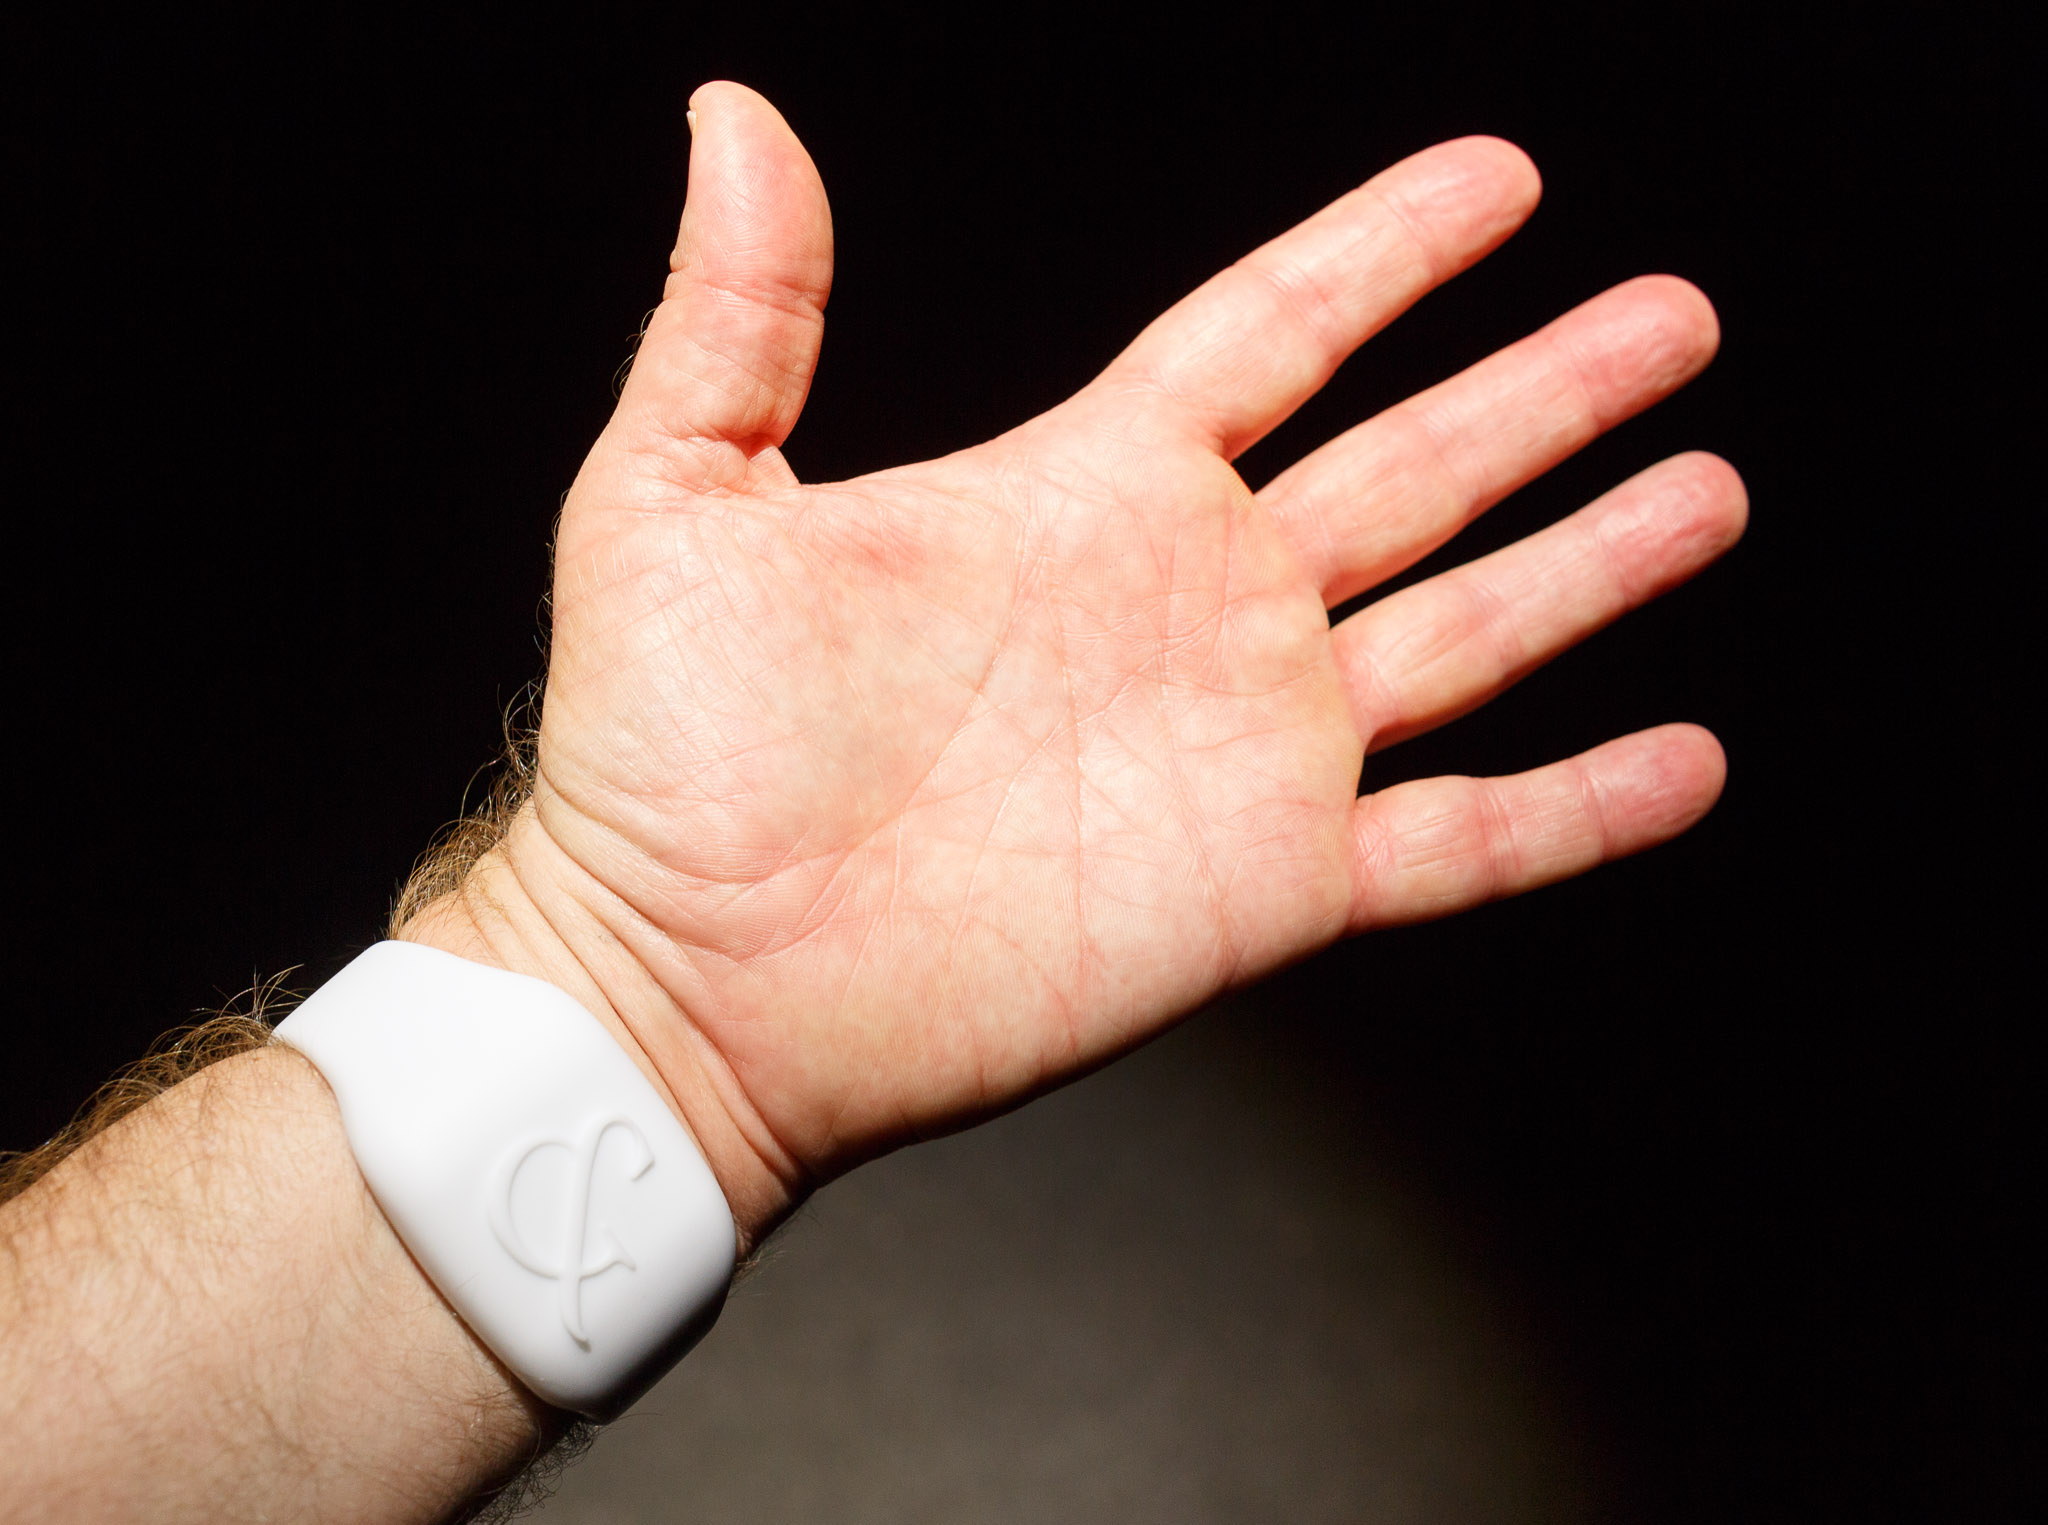 The emotion sensor, made by Studio XO and sold to ad firm Saatchi & Saatchi, has detectors that press against the skin on the inside of the wrist.